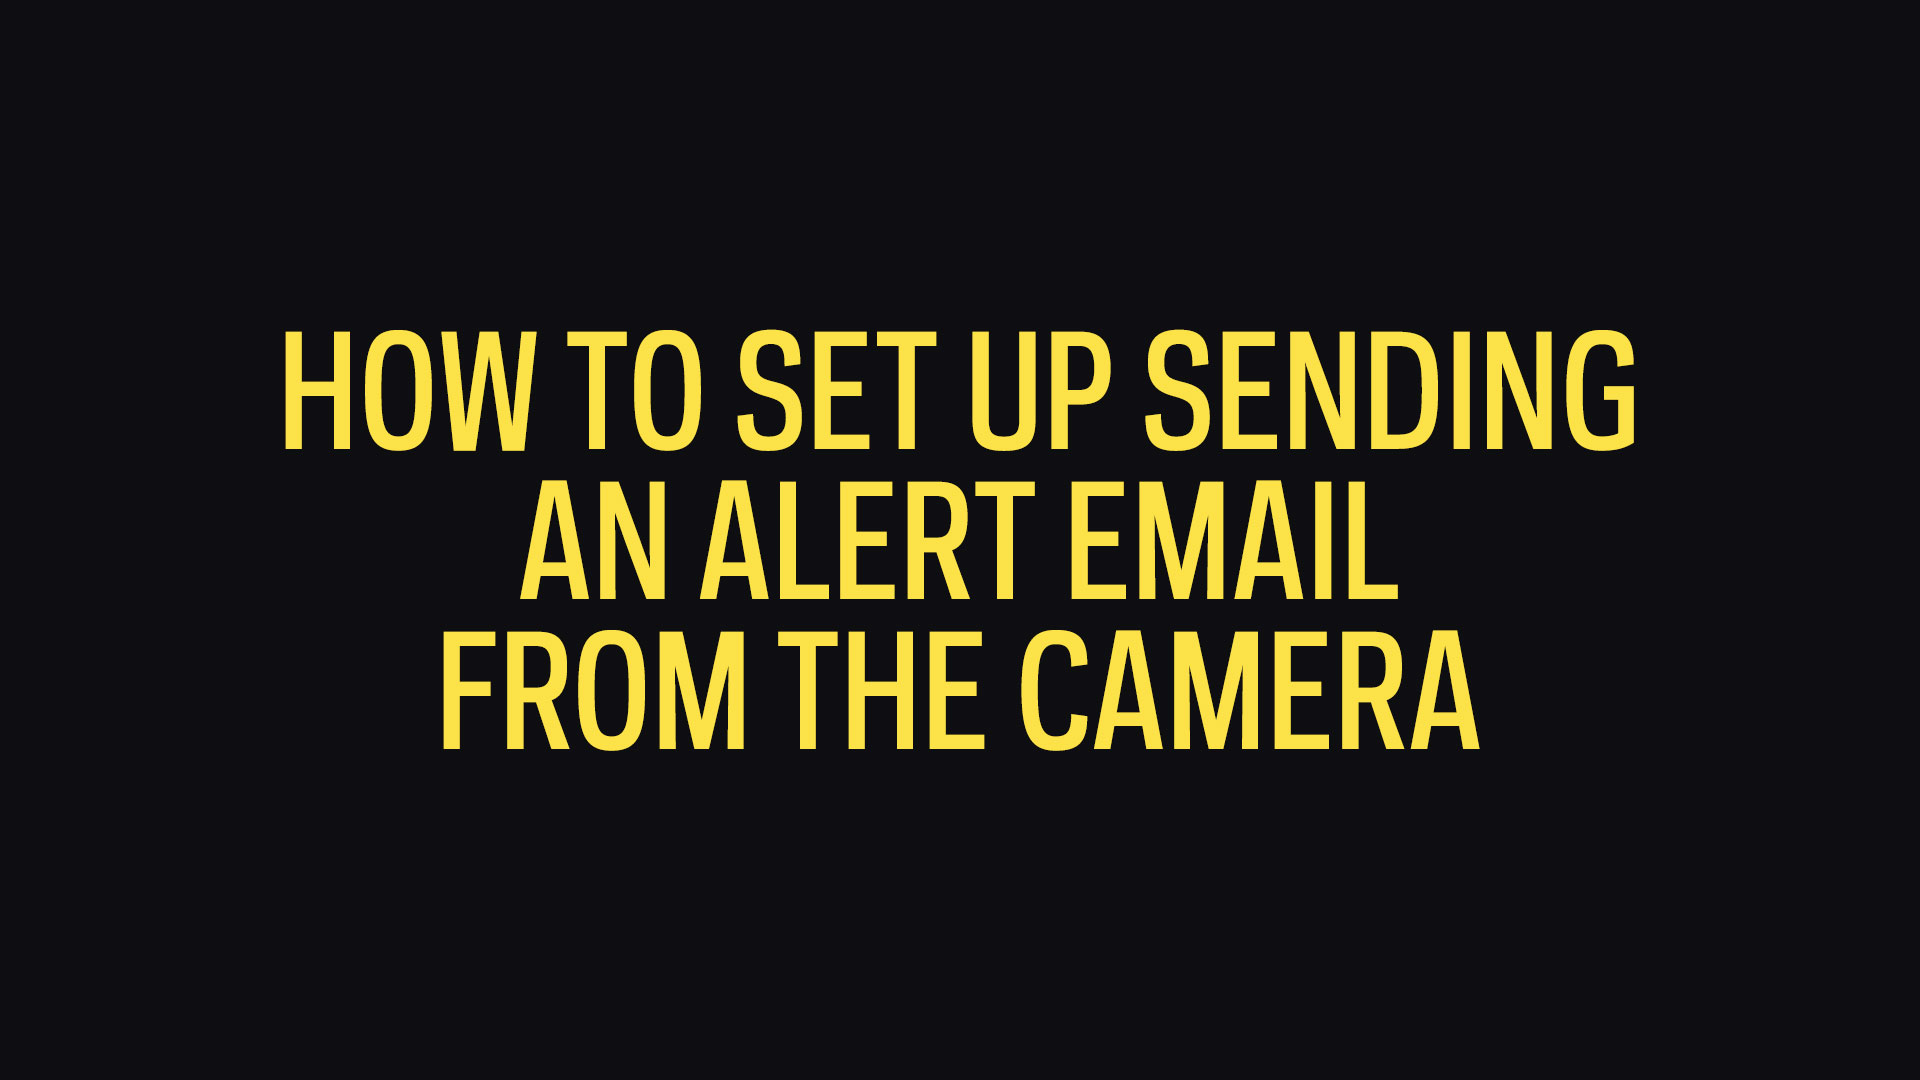 How To Set Up Sending An Alert Email From The Camera